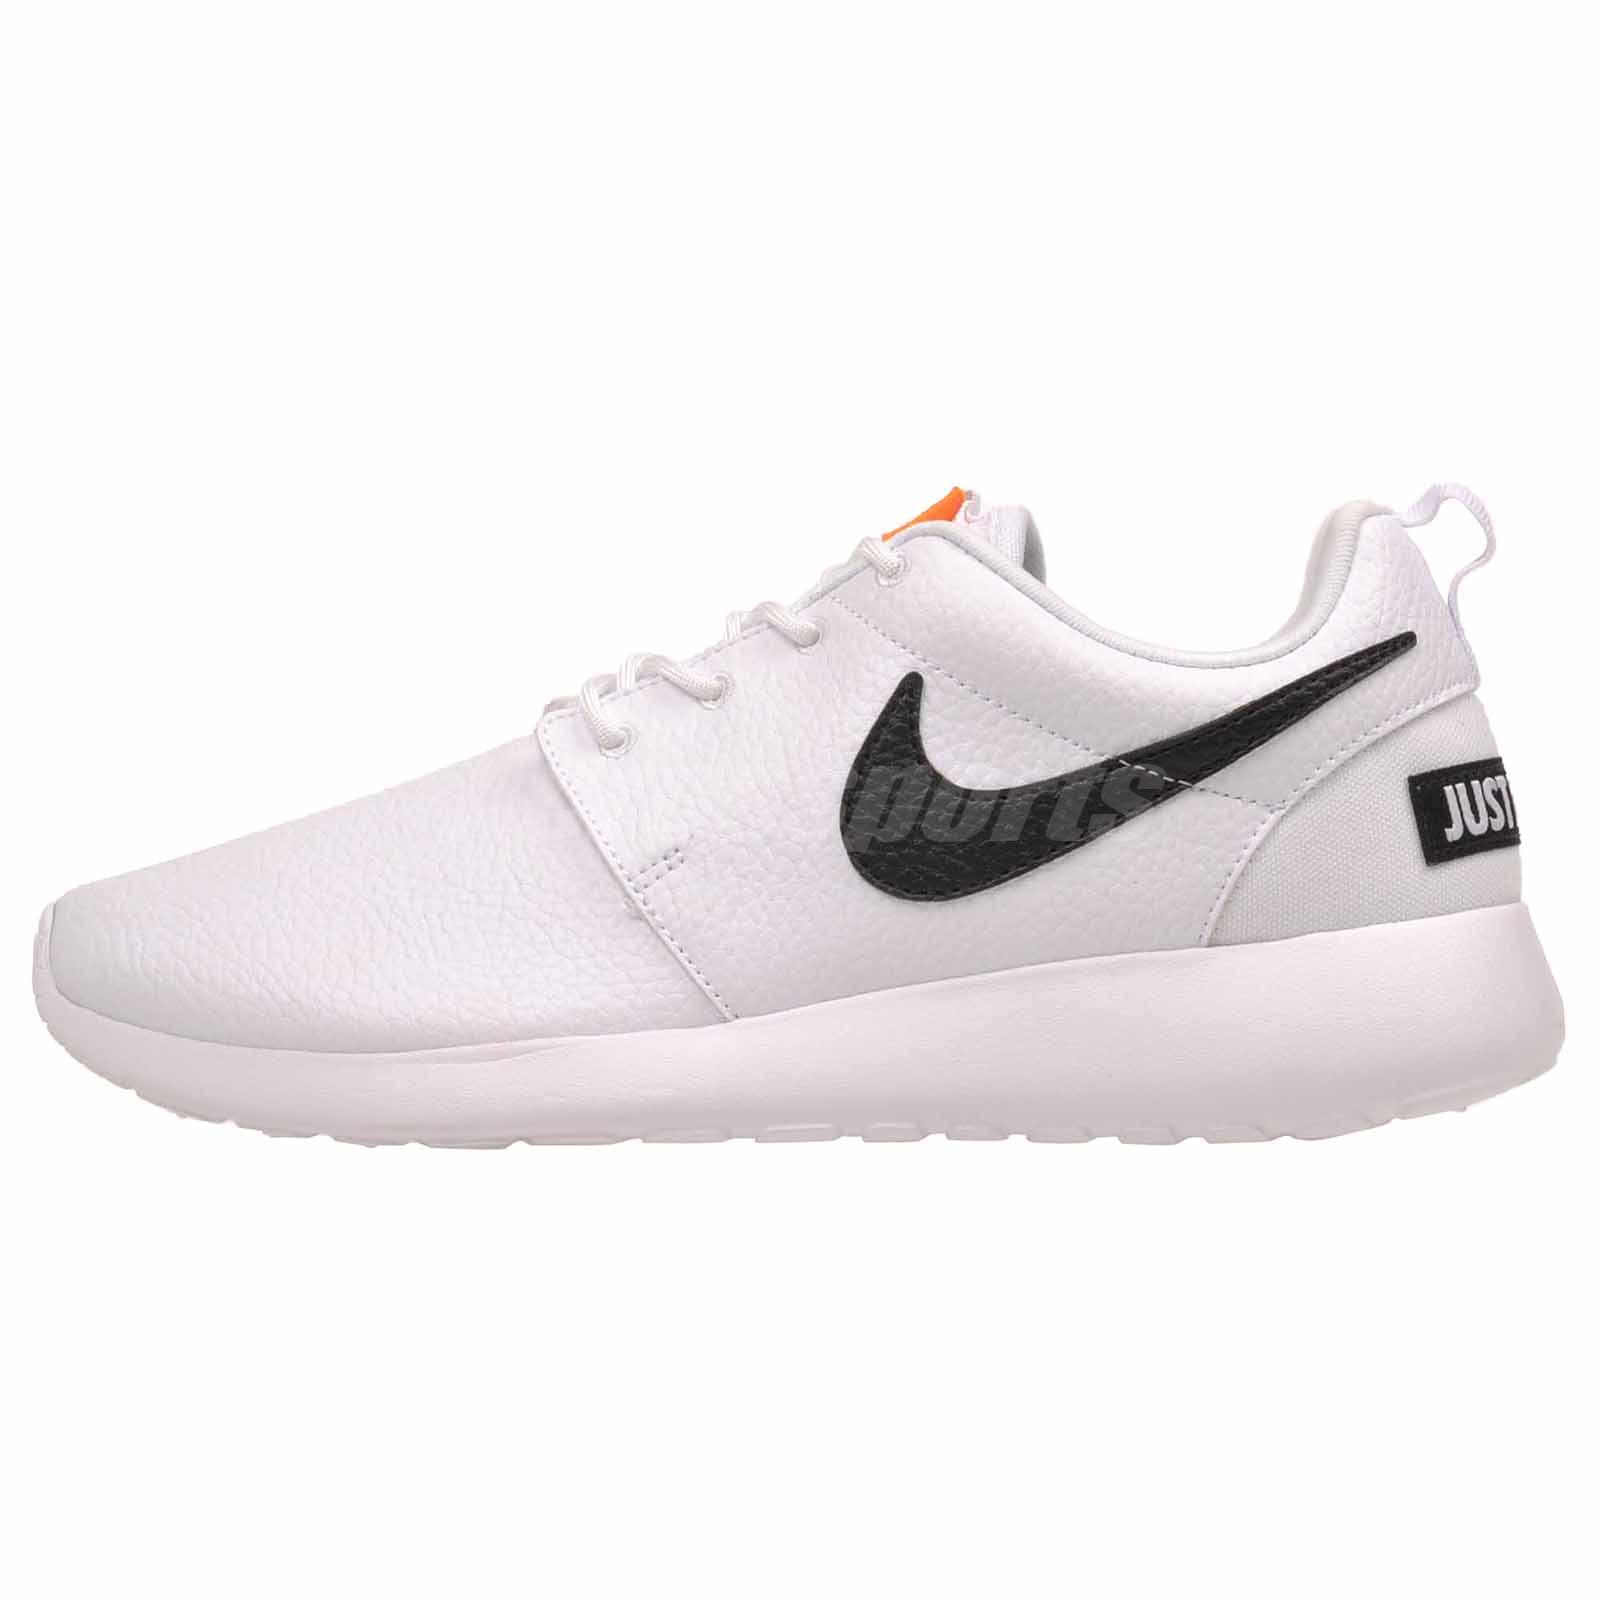 5d04a24f6e694 Details about Nike Wmns Roshe One PRM Running Womens Premium Shoes NWOB  White Black 833928-104